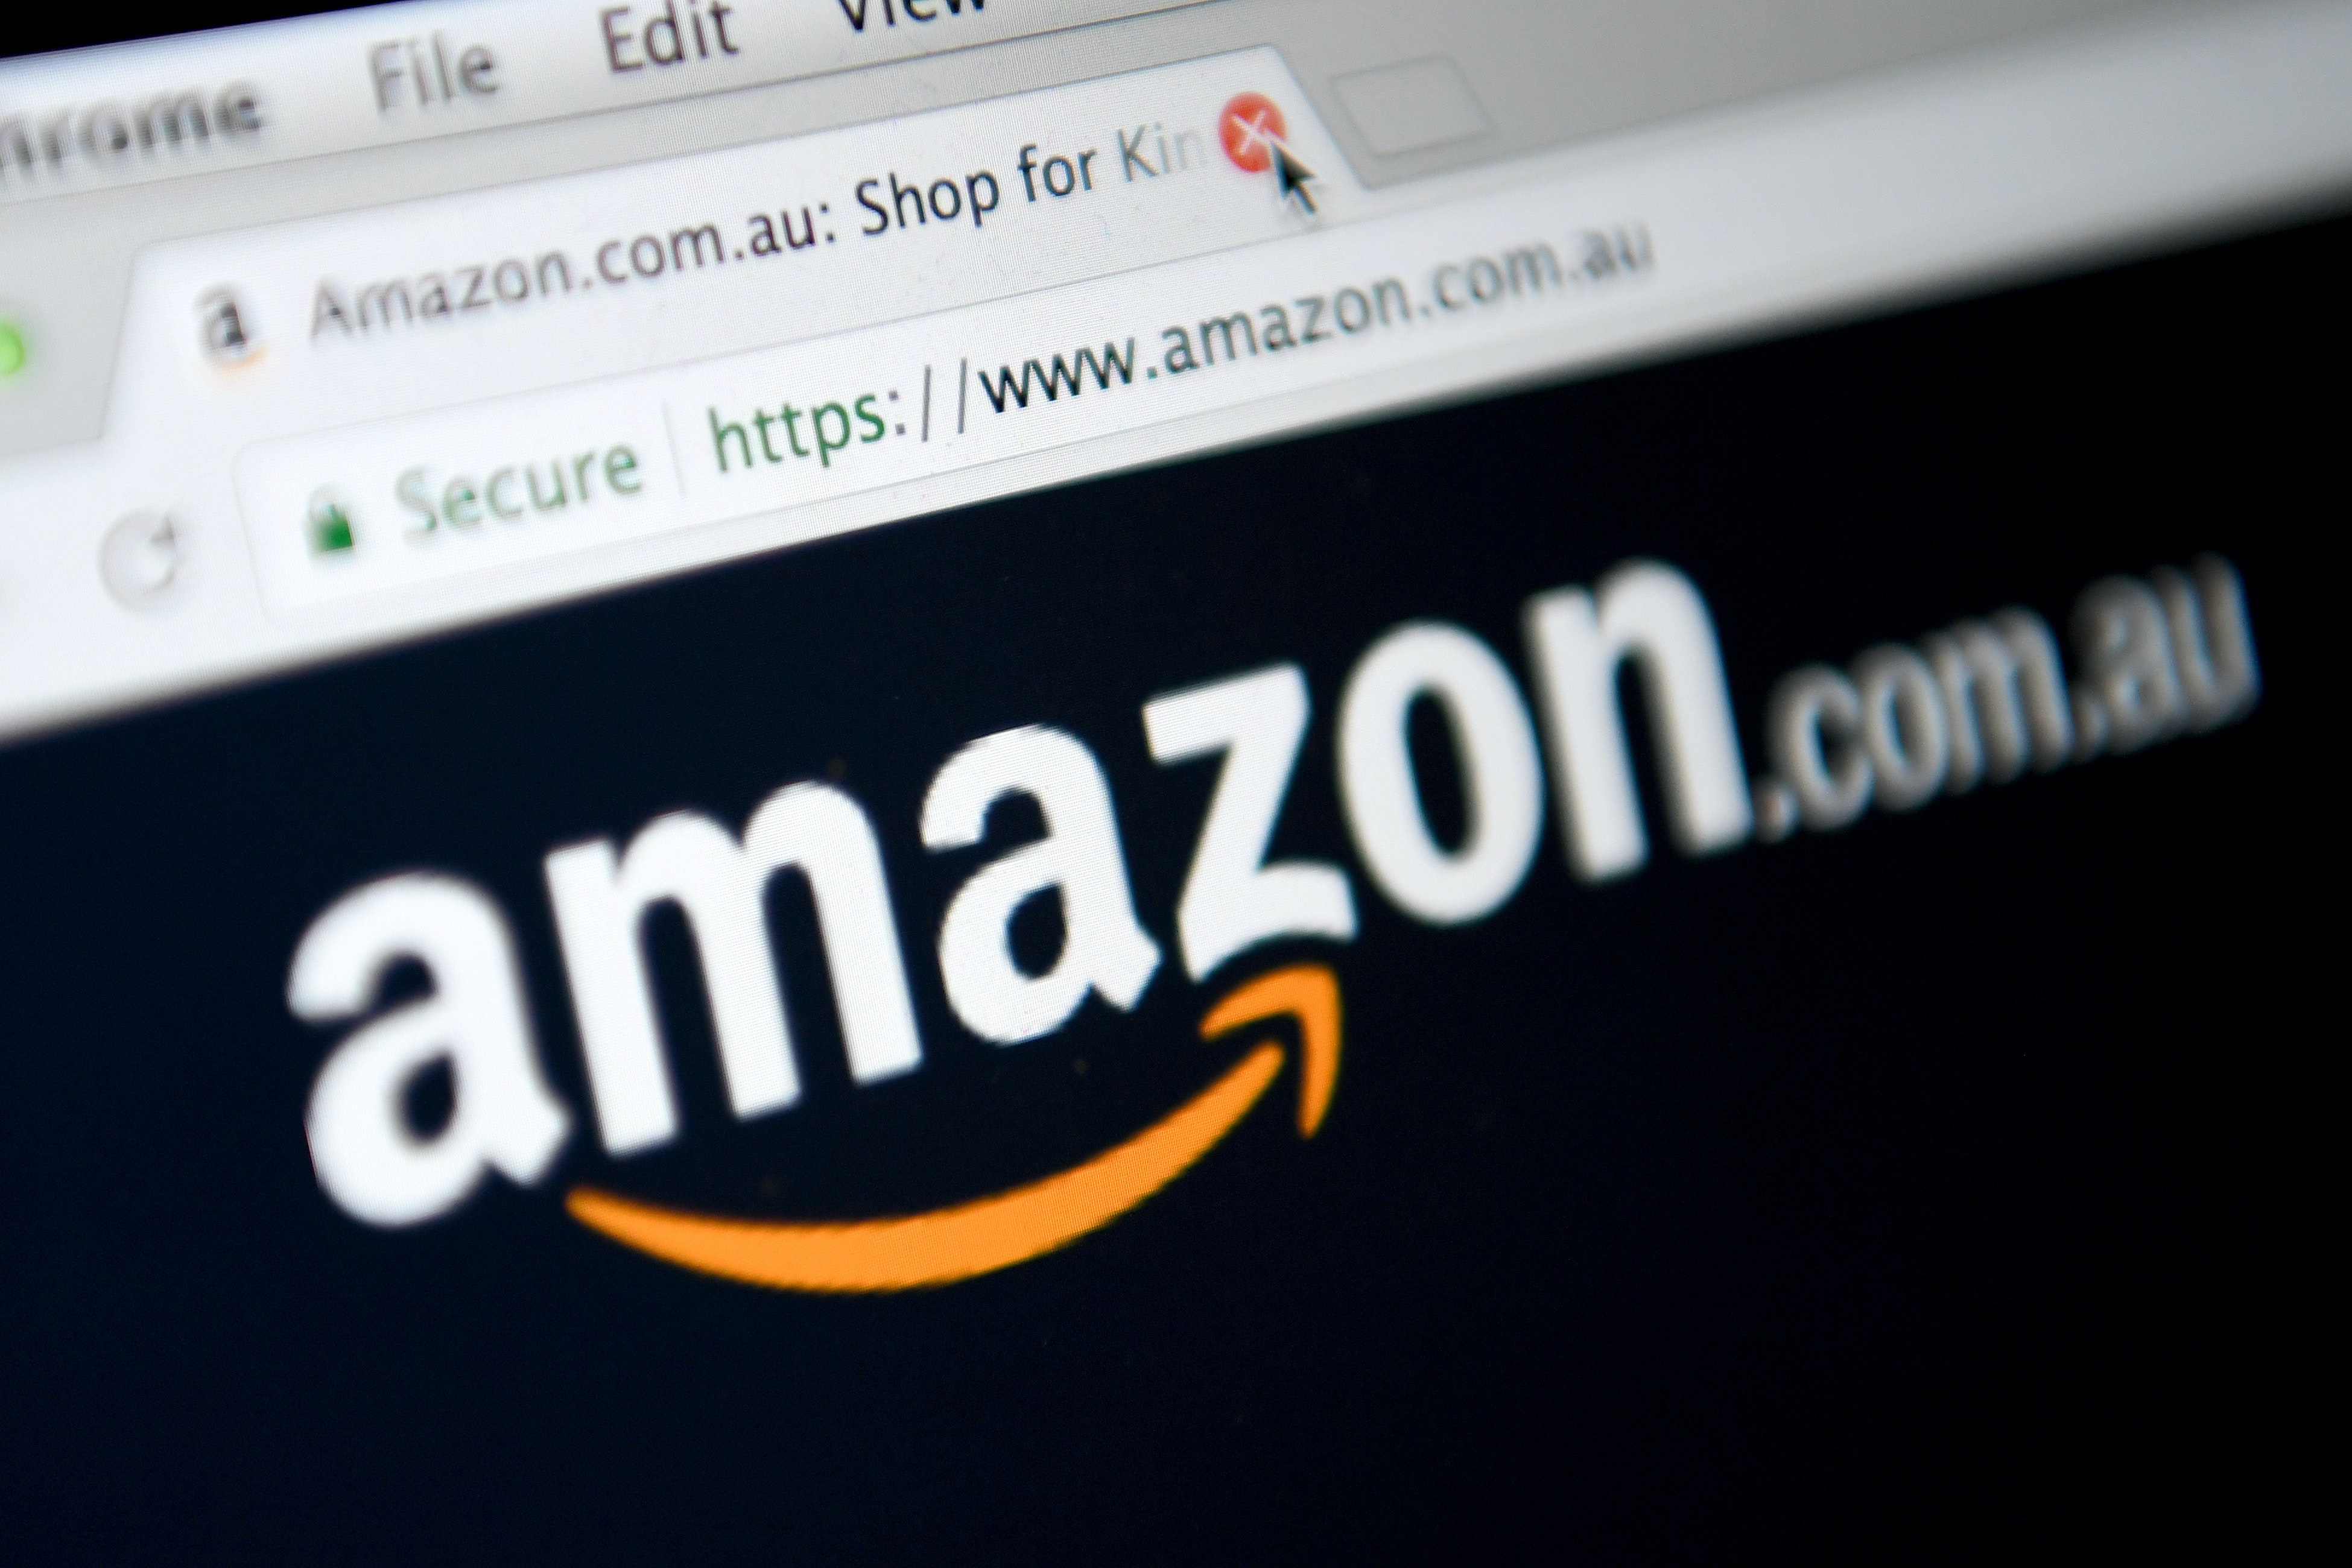 Amazon Reveals The One Thing Australians Are Spending Big On